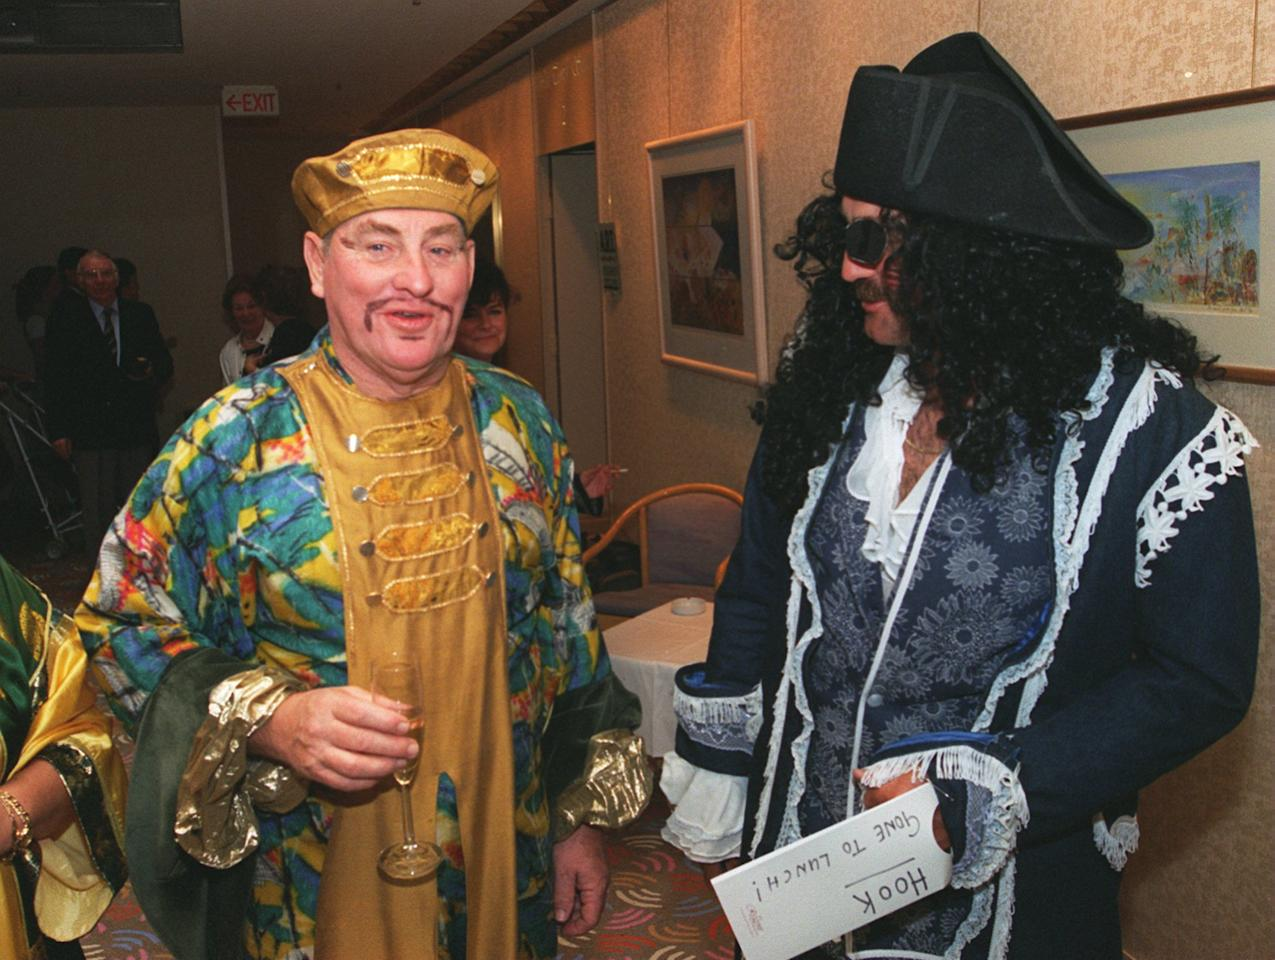 25 DEC 1994  ENGLANDS  CHAIRMAN OF THE SELECTORS RAY ILLINGWORTH (LEFT) AND GRAHAM GOOCH  IN FANCY DRESS FOR THE CHRISTMAS PARTY DURING THE SECOND TEST AGAINST AUSTRALIA IN MELBOURNE. Mandatory Credit: Graham Chadwick/ALLSPORT